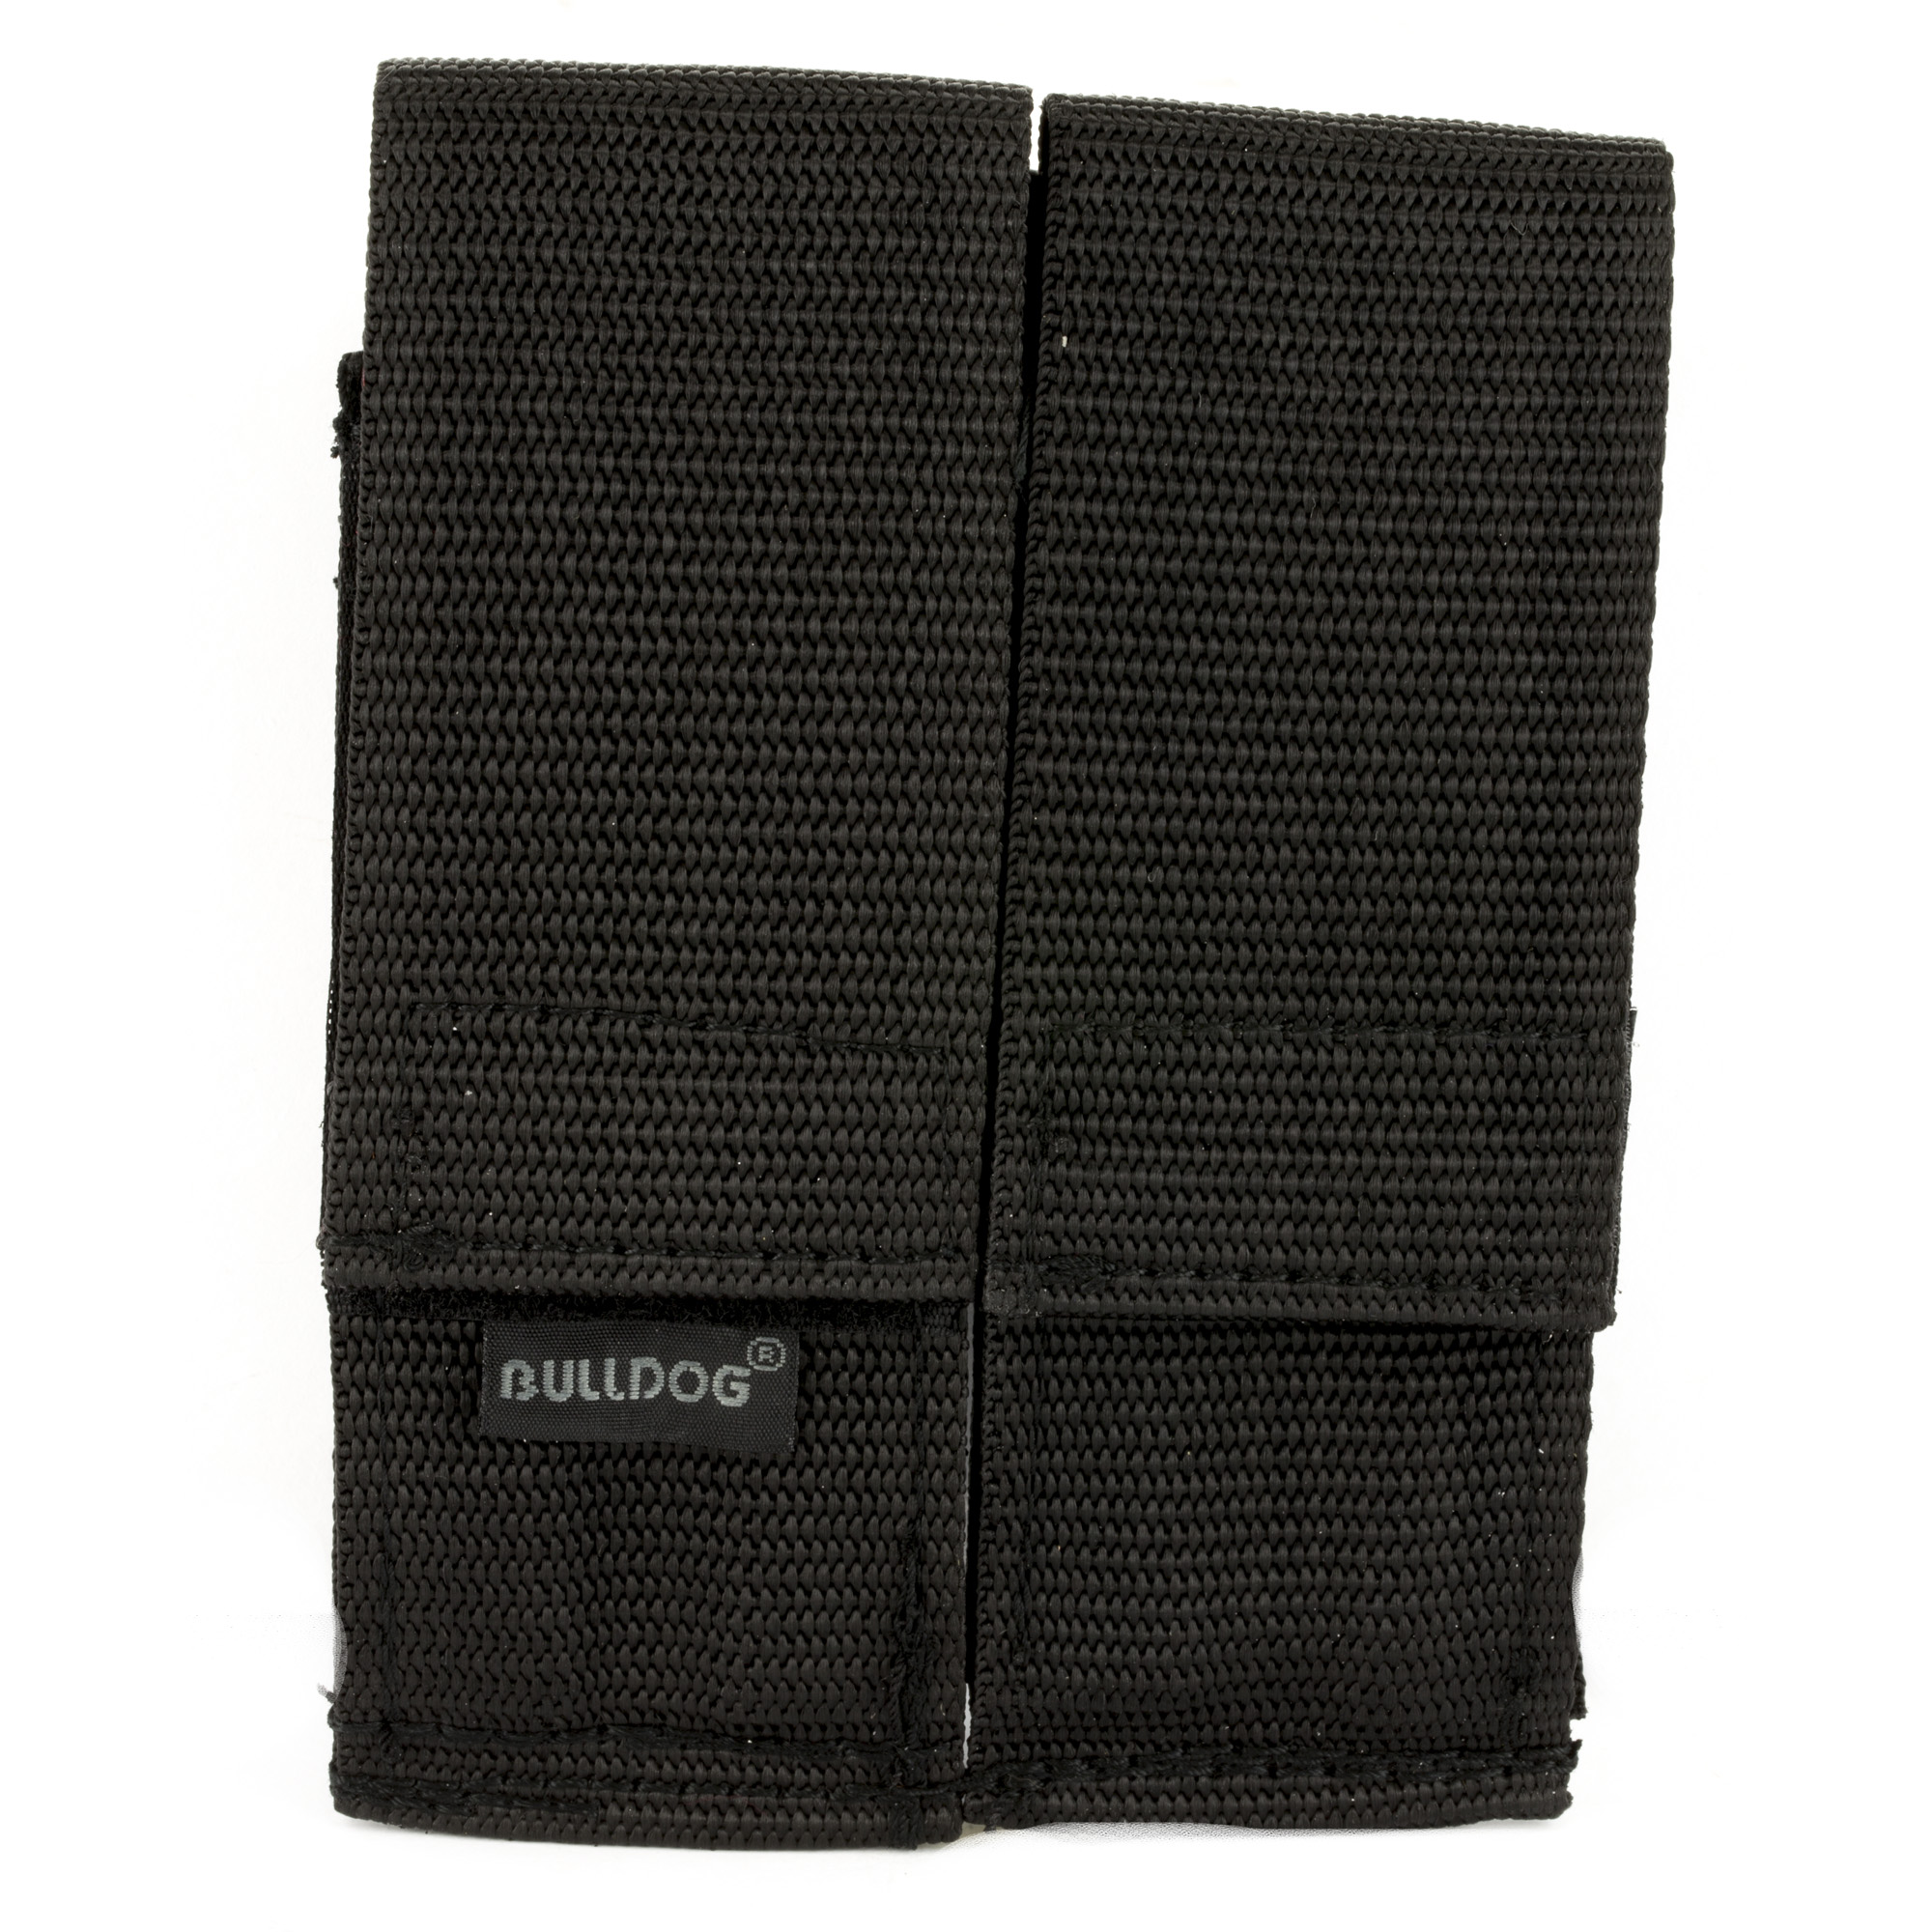 This nylon constructed double magazine holder attaches to your belt. Has a hook and loop closure.